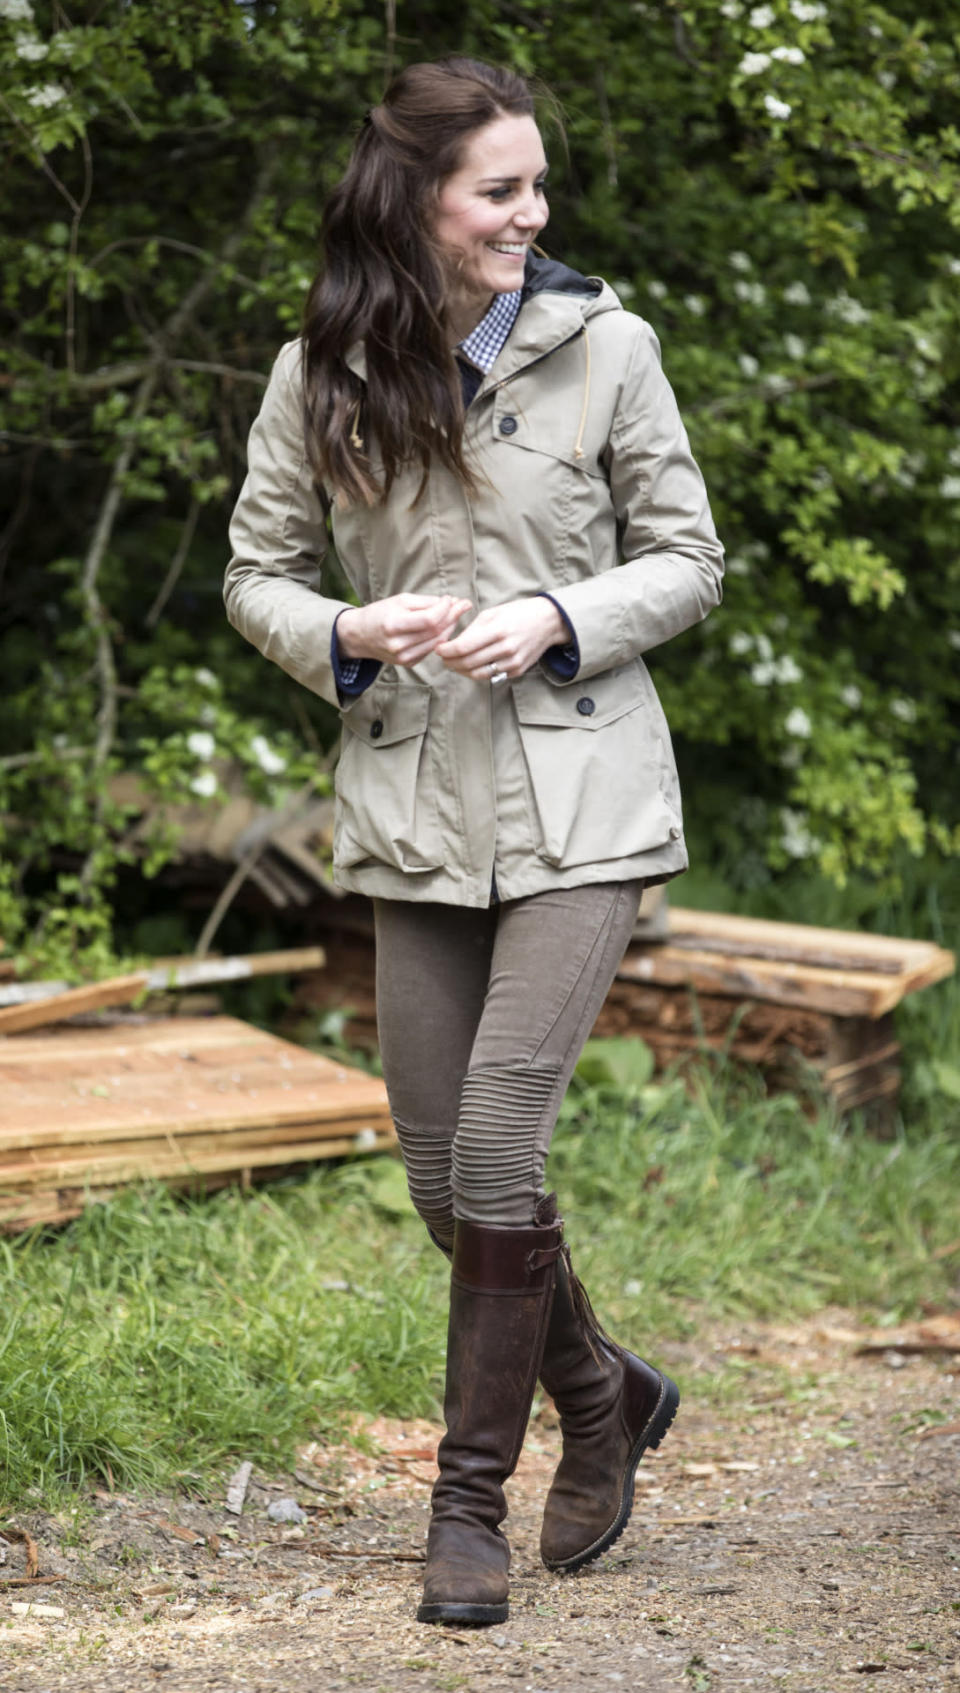 <p>The Duchess dressed down to visit a city farm in Gloucestershire. Wearing a £350 wax parka by Troy London, Kate donned brown biker jeans from Zara, a navy J Crew sweater and gingham shirt from Gap. She finished the neutral ensemble with tasselled Penelope Chilvers boots that she has been wearing for a whopping 13 years. </p><p><i>[Photo: PA]</i></p>